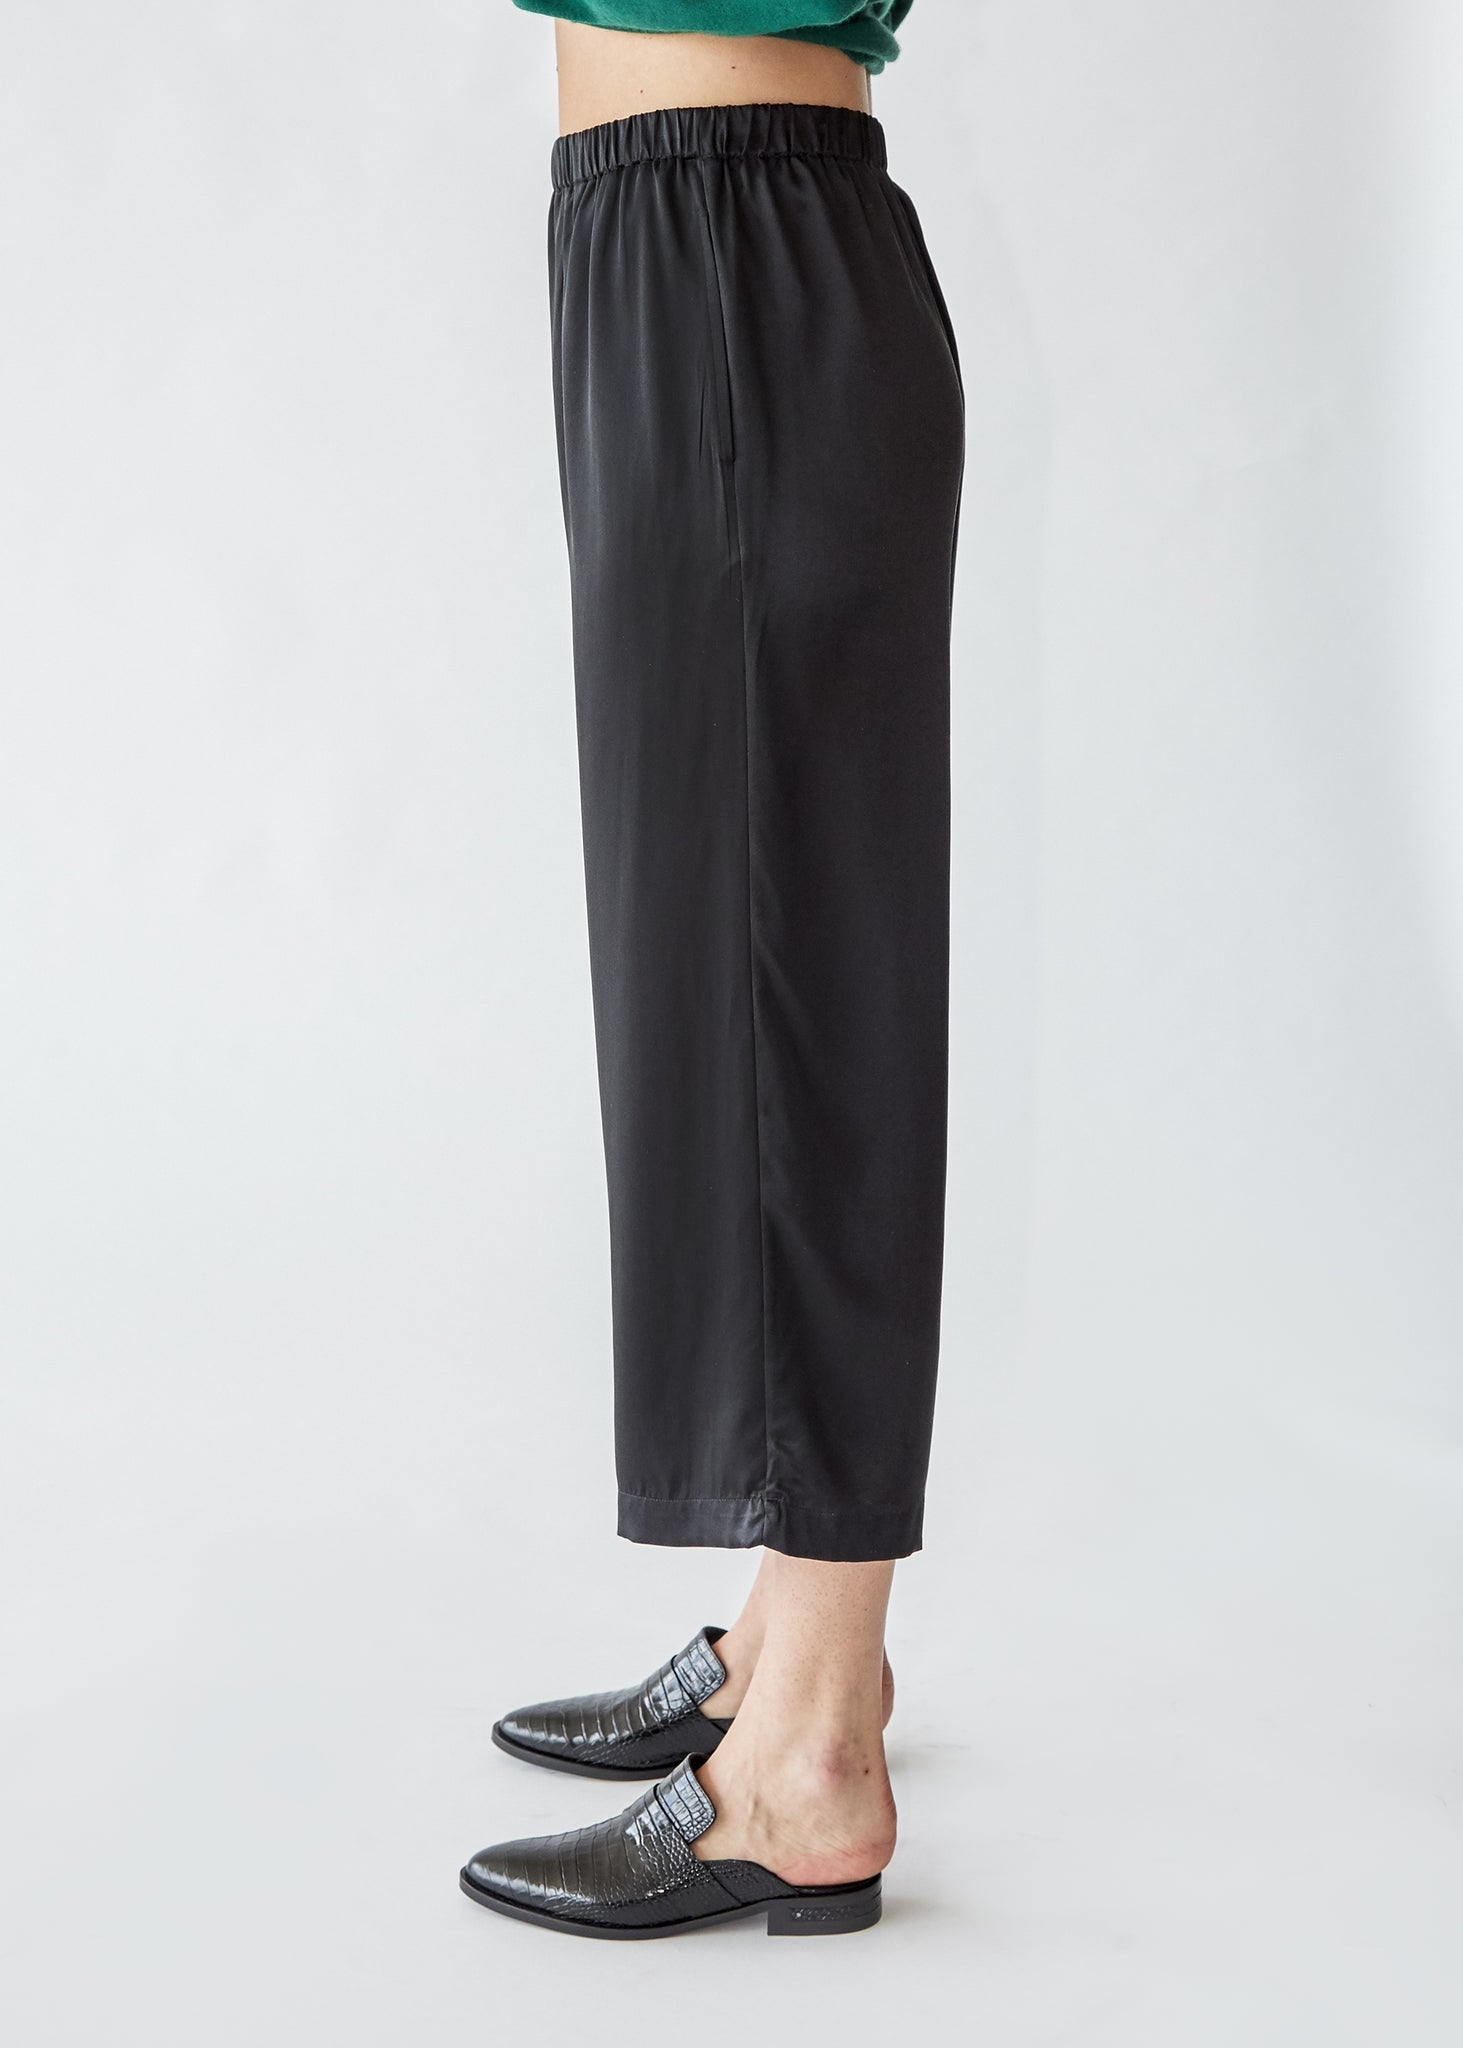 Wide Leg Pull On Pant in Black Silk Charmeuse